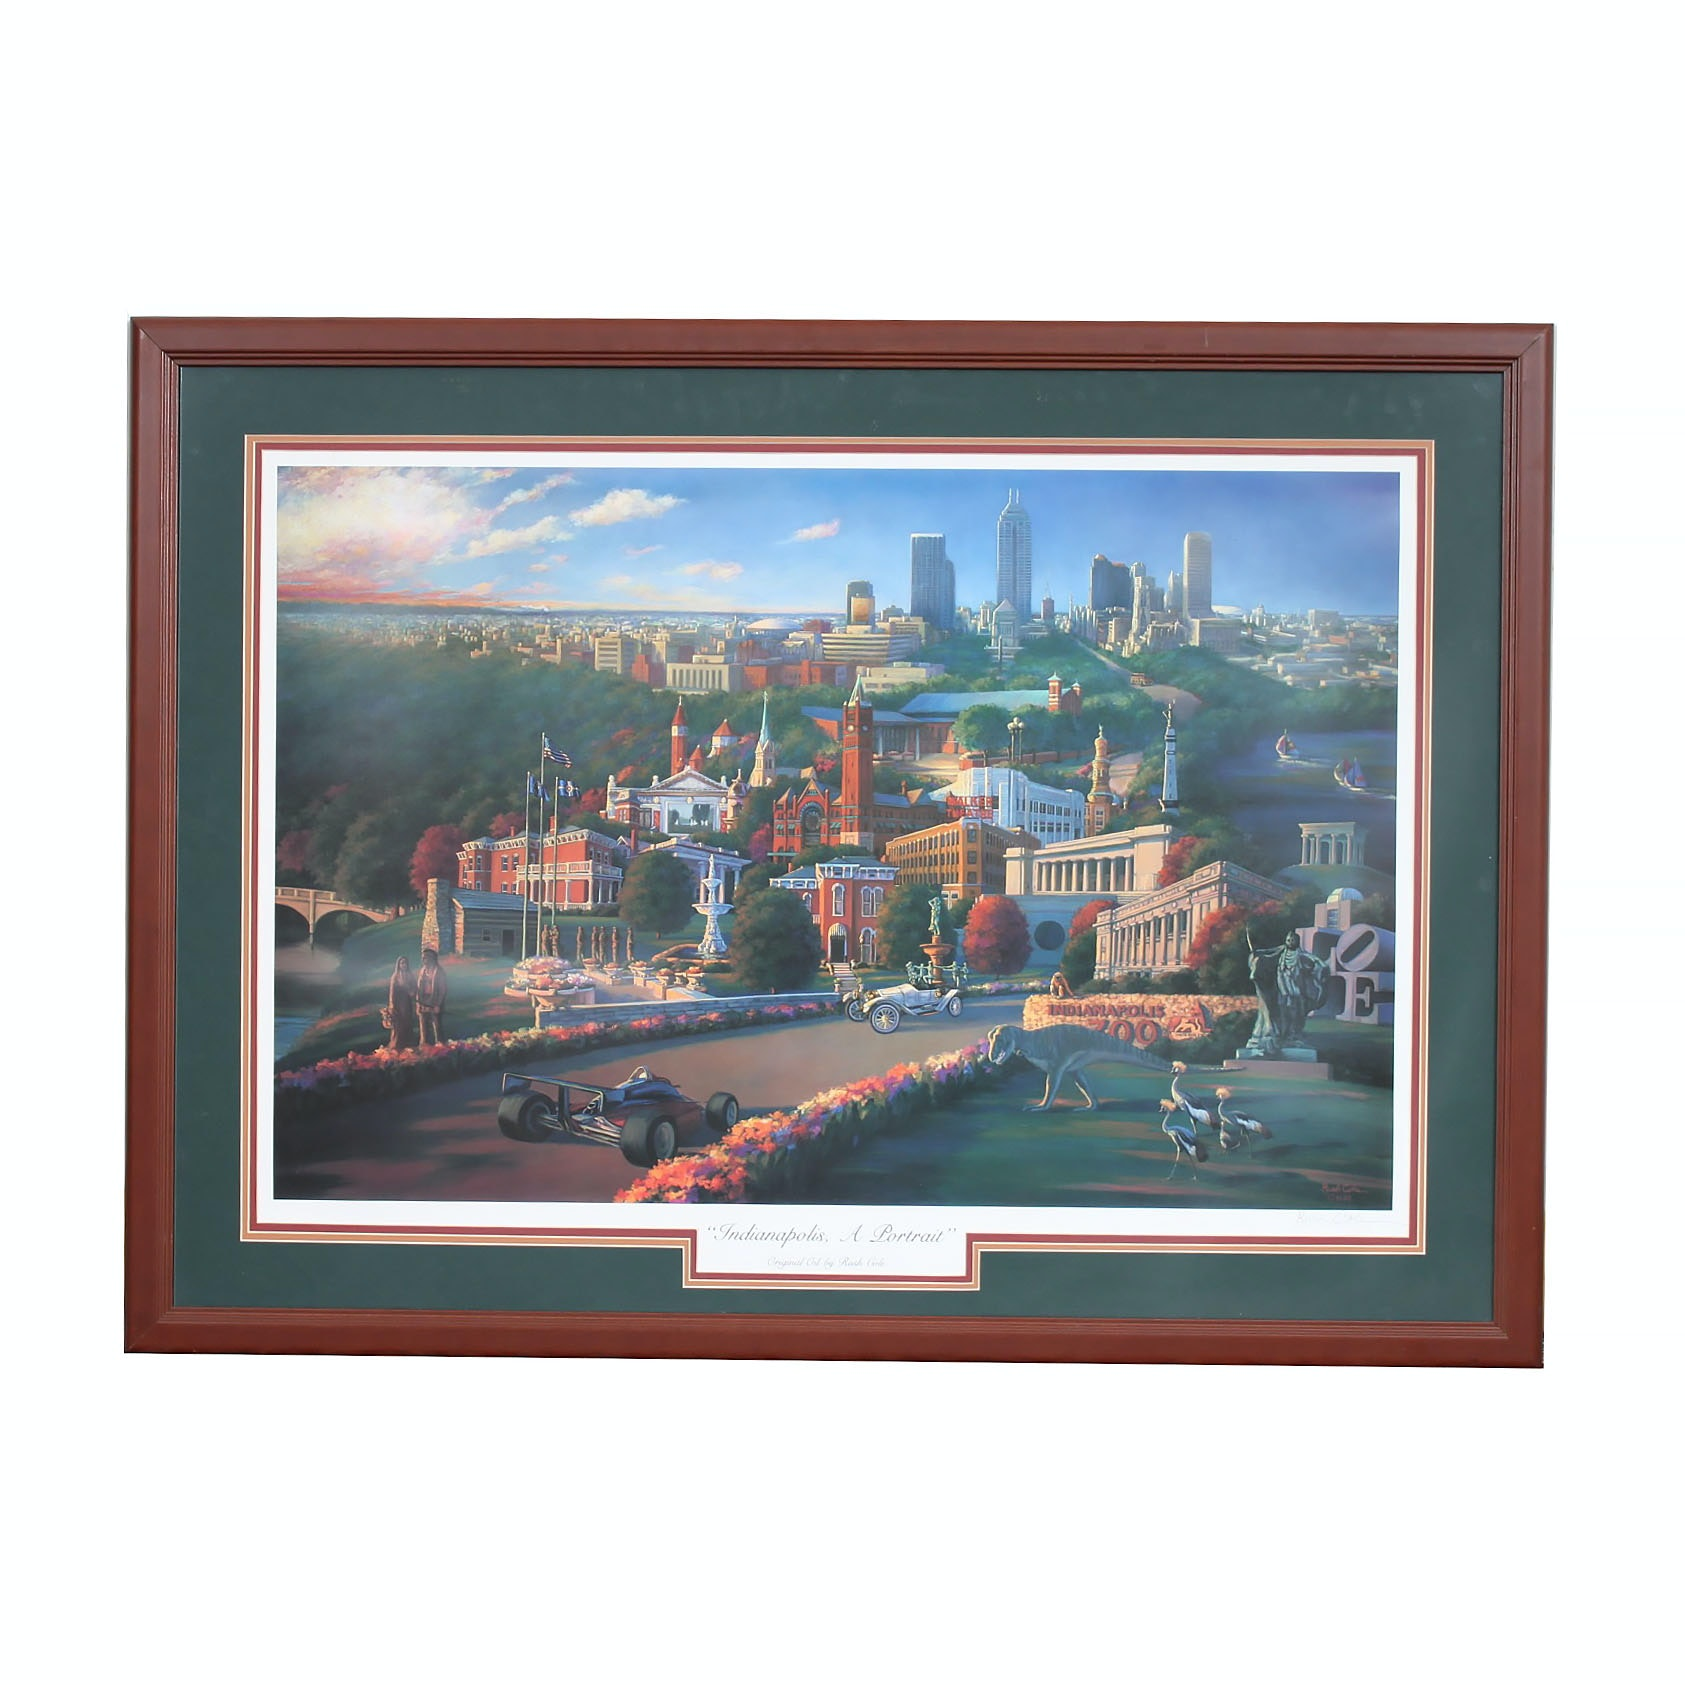 Framed Print of Indianapolis after Rush Cole